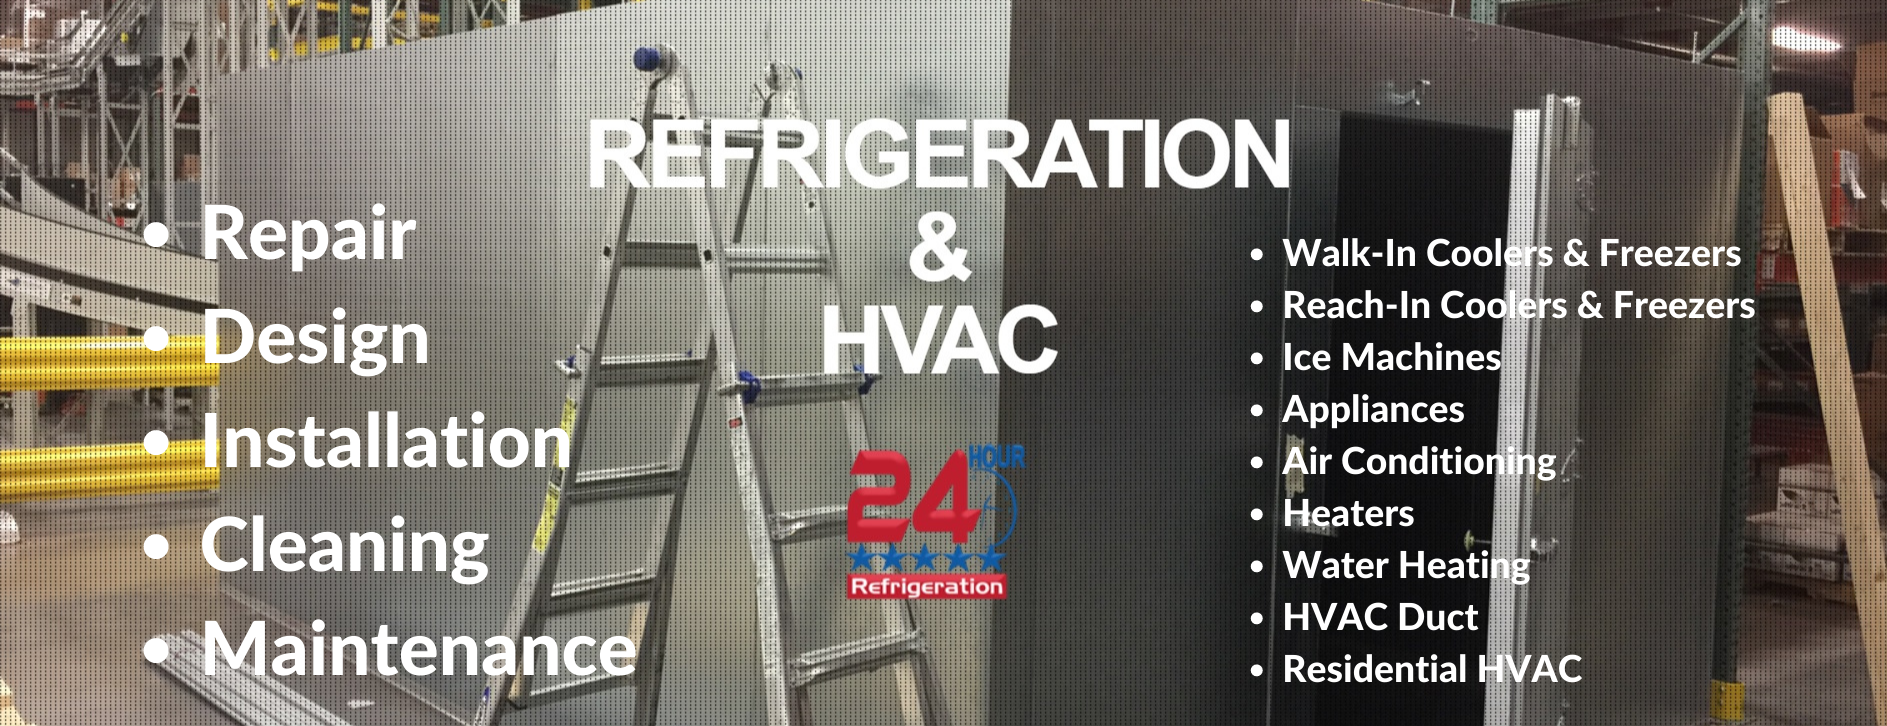 Atlanta, GA Commercial Refrigeration Services